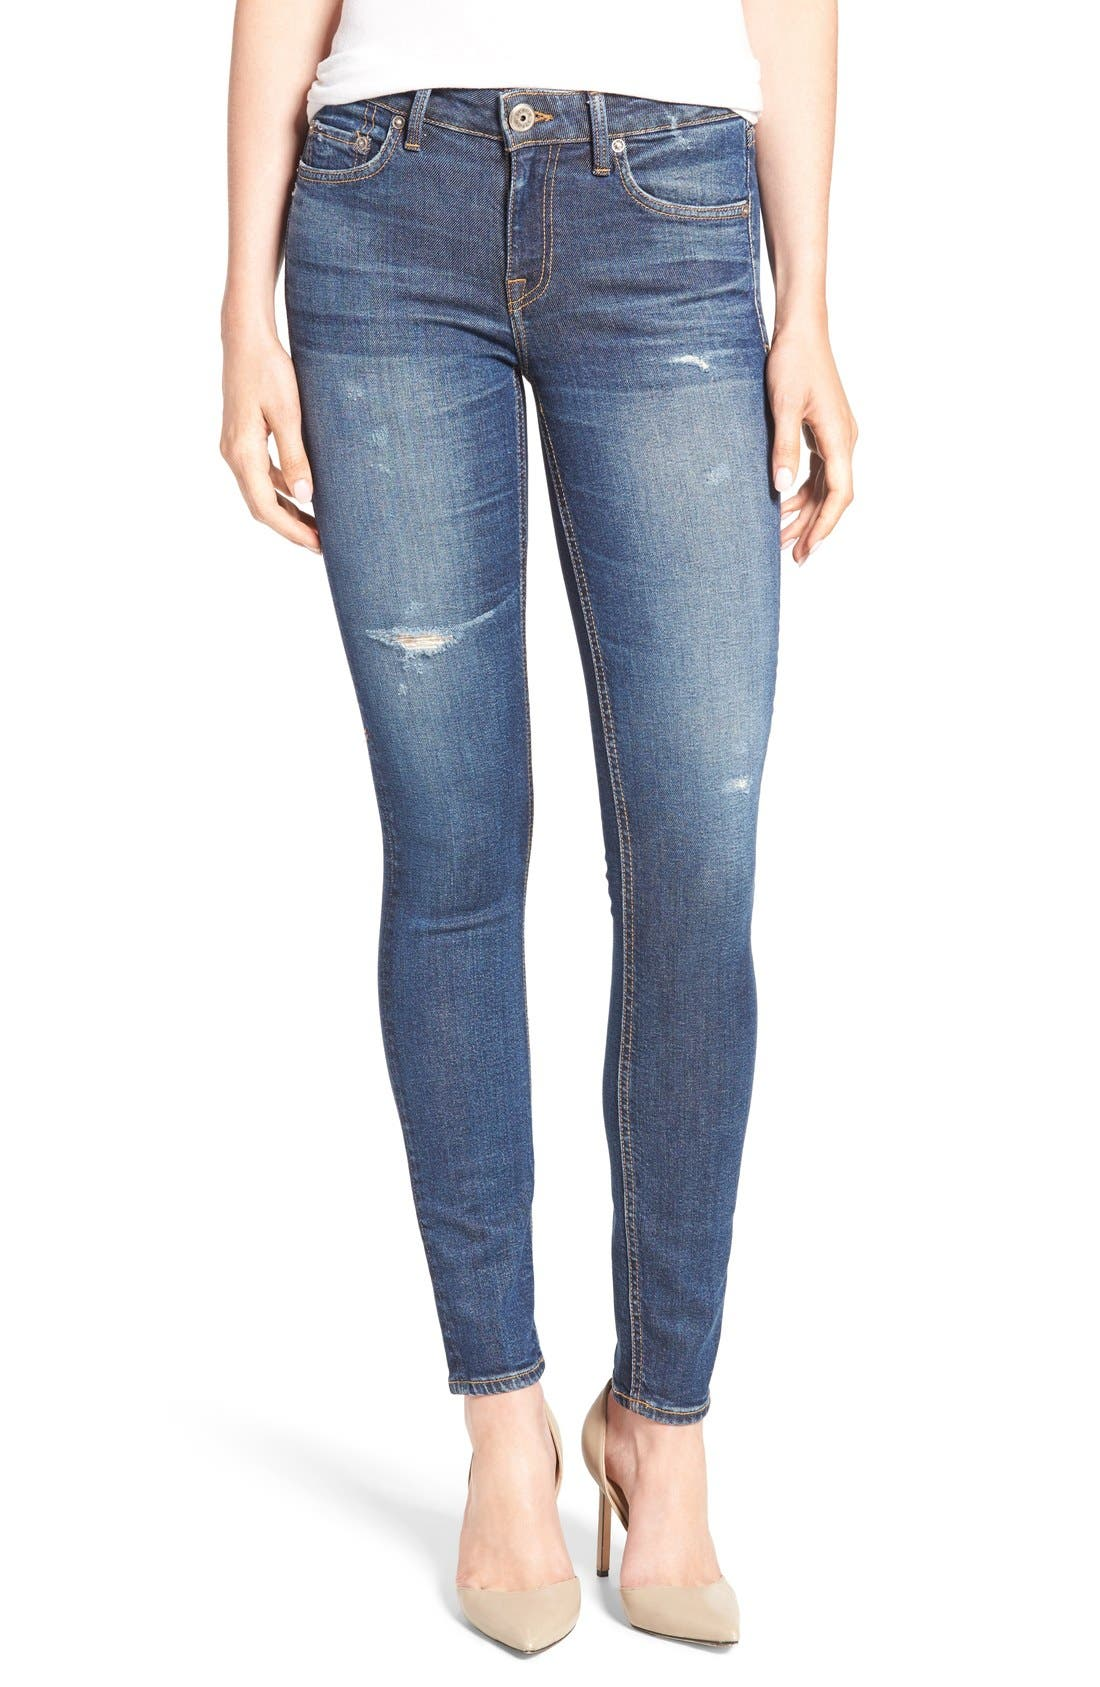 STROM,                             'Tio' Ankle Skinny Jeans,                             Main thumbnail 1, color,                             420